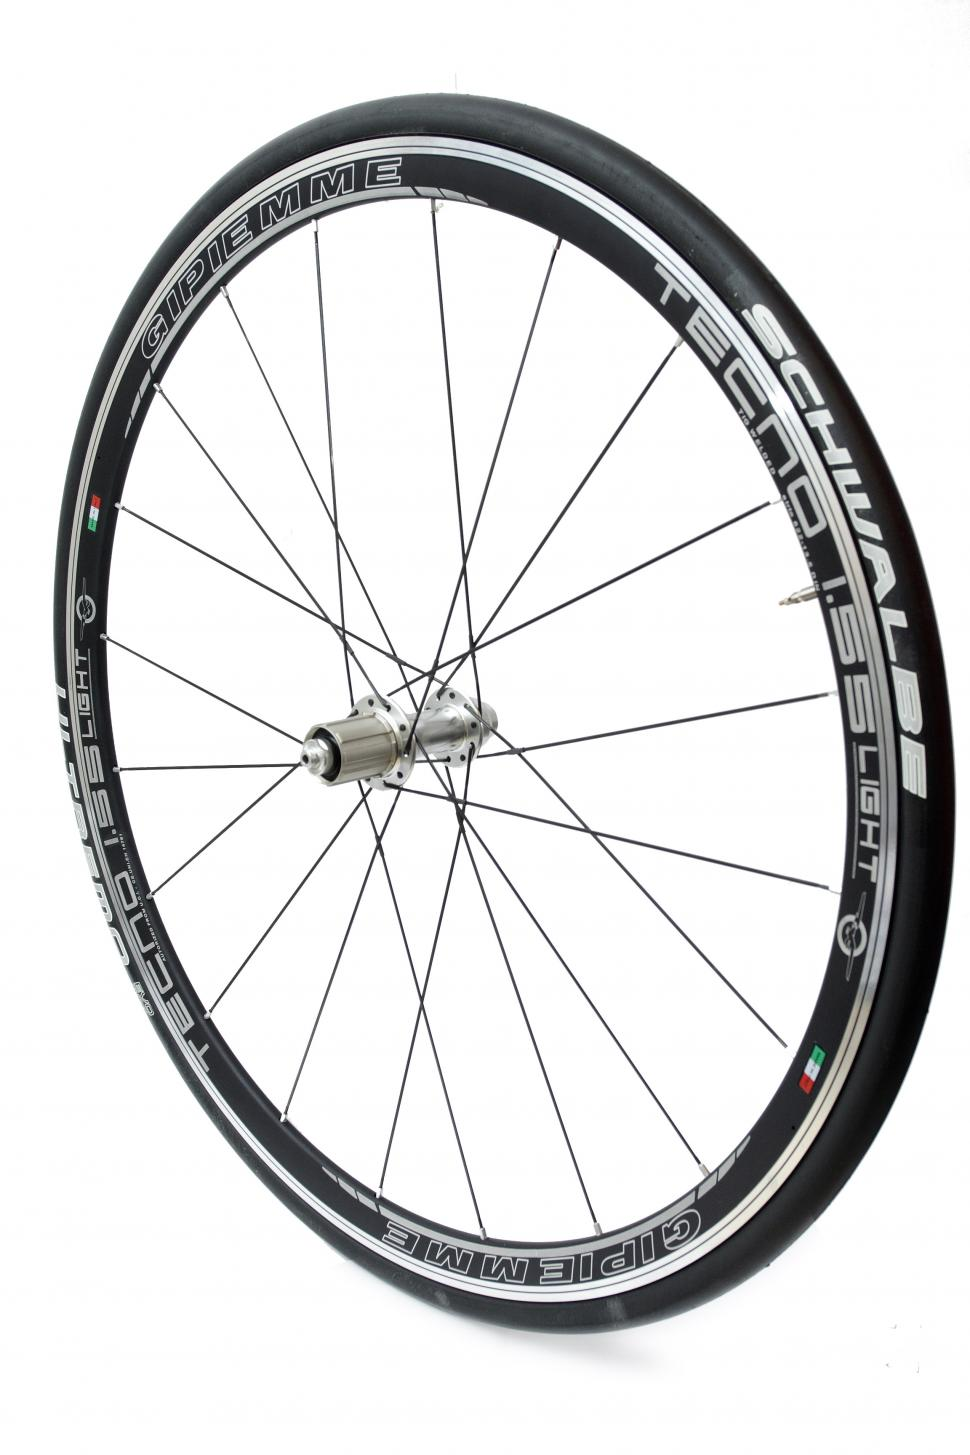 Gipiemme Techno 155 light wheel [r]